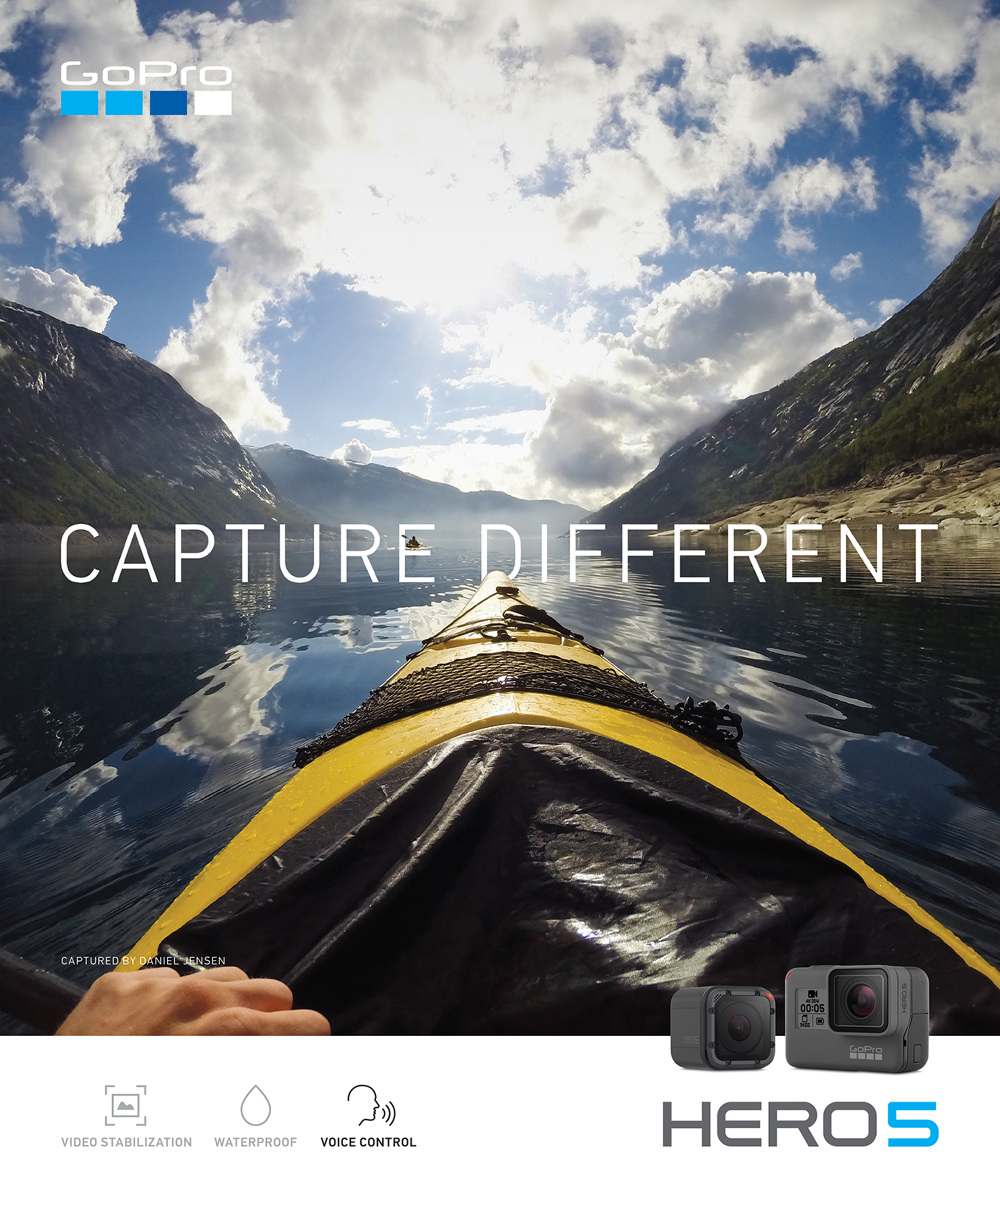 GoPro HERO5 Campaign refunktion Personal network